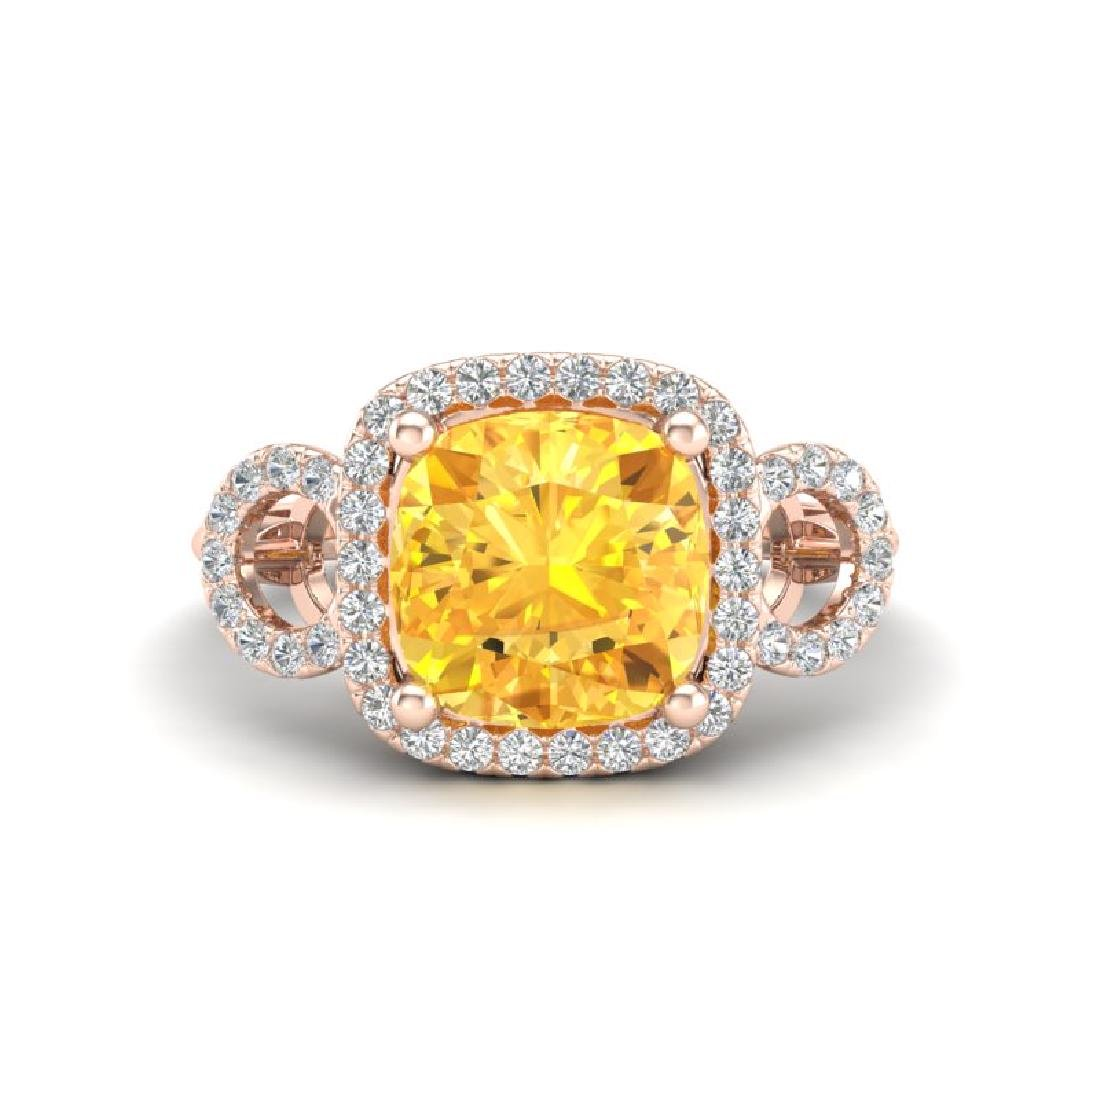 3.75 CTW Citrine & Micro VS/SI Diamond Ring 14K Rose